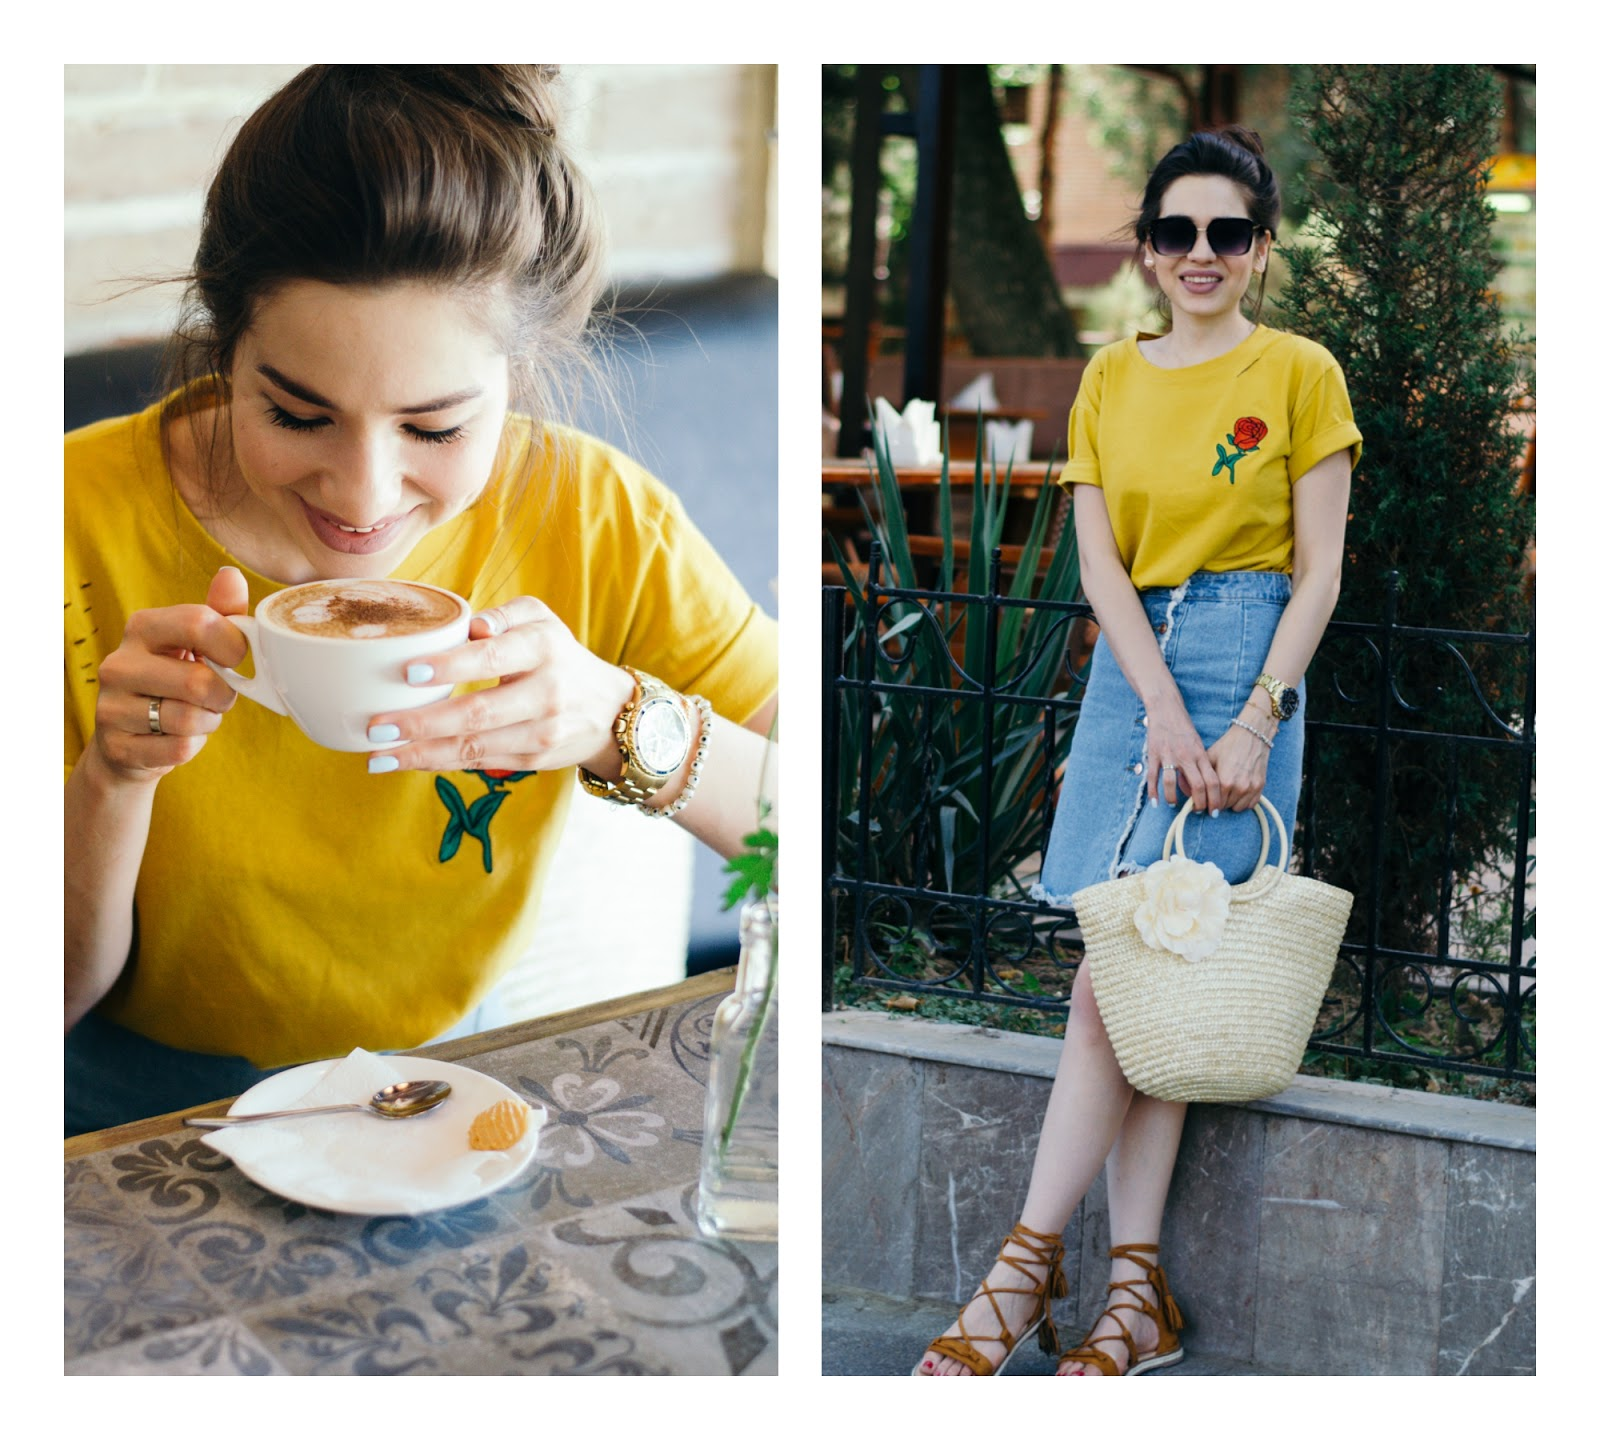 diyorasnotes diyora beta fashion blogger style outfitoftheday lookoftheday mini denim skirt yellow t-shirt  straw bag summer look street style casual